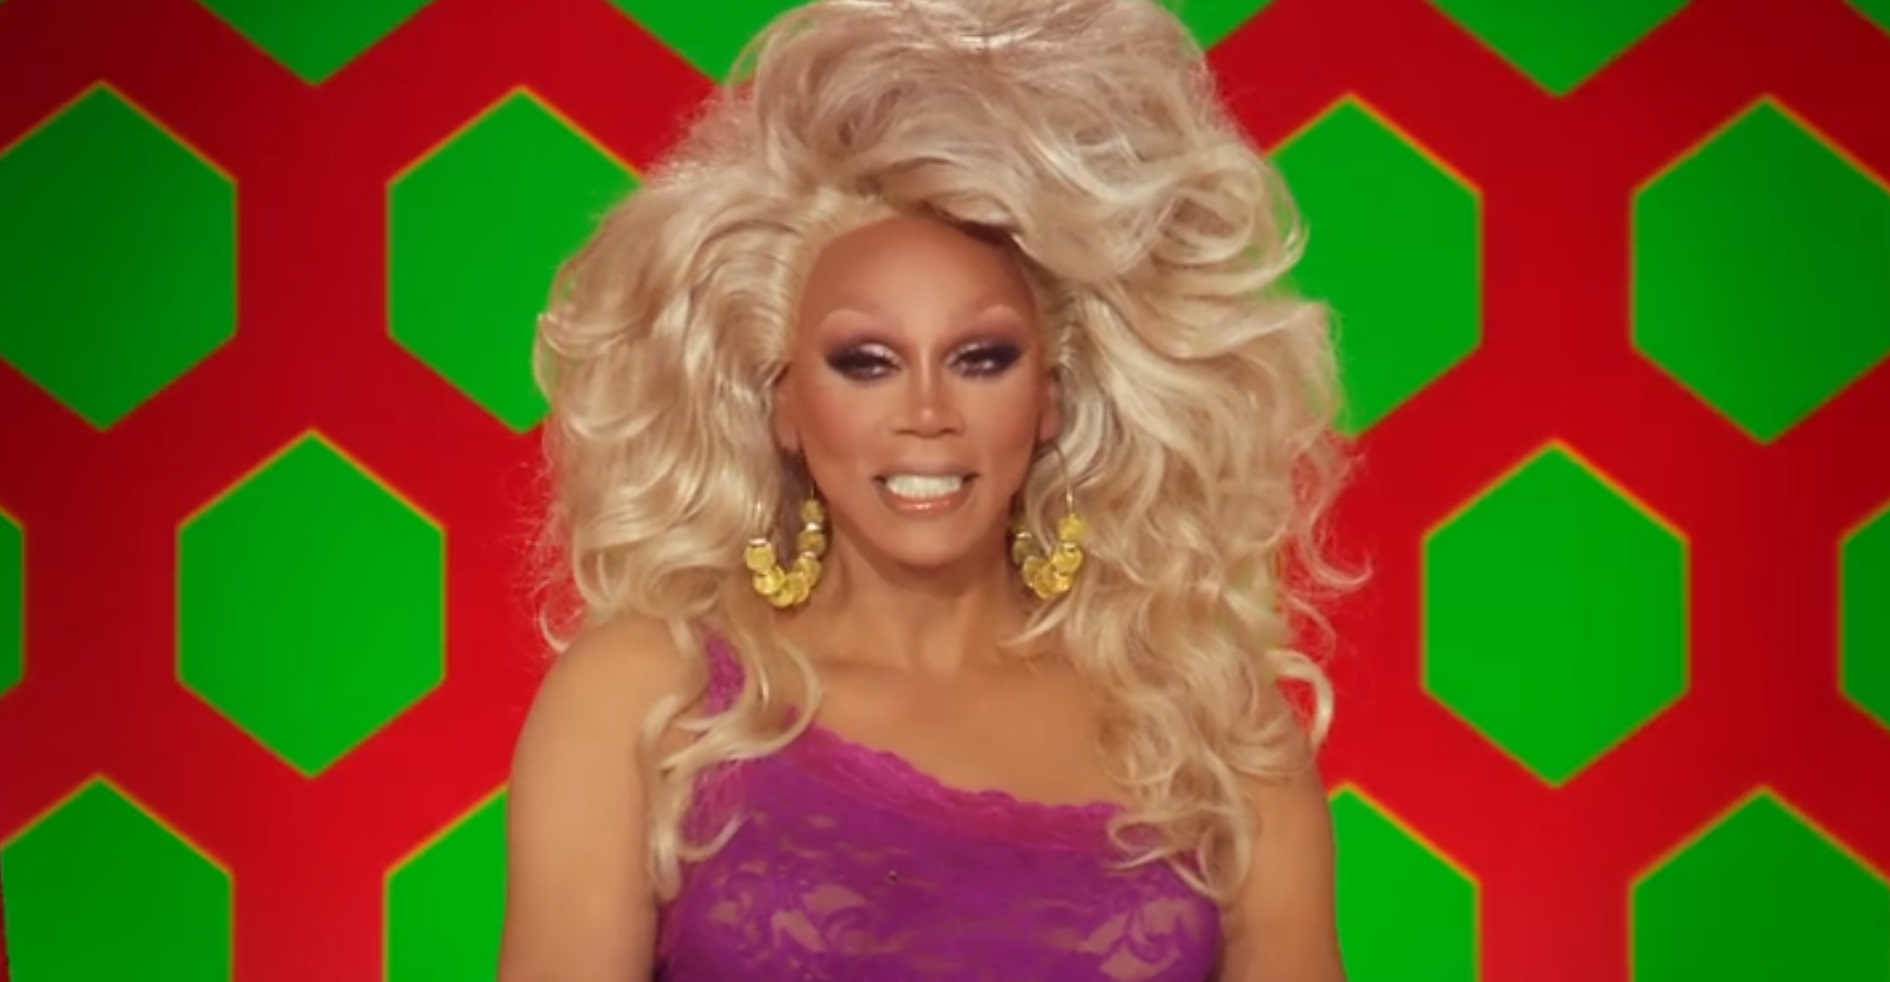 Rupaul Christmas Special 2020 RuPaul's Drag Race Christmas special makes poignant trans change